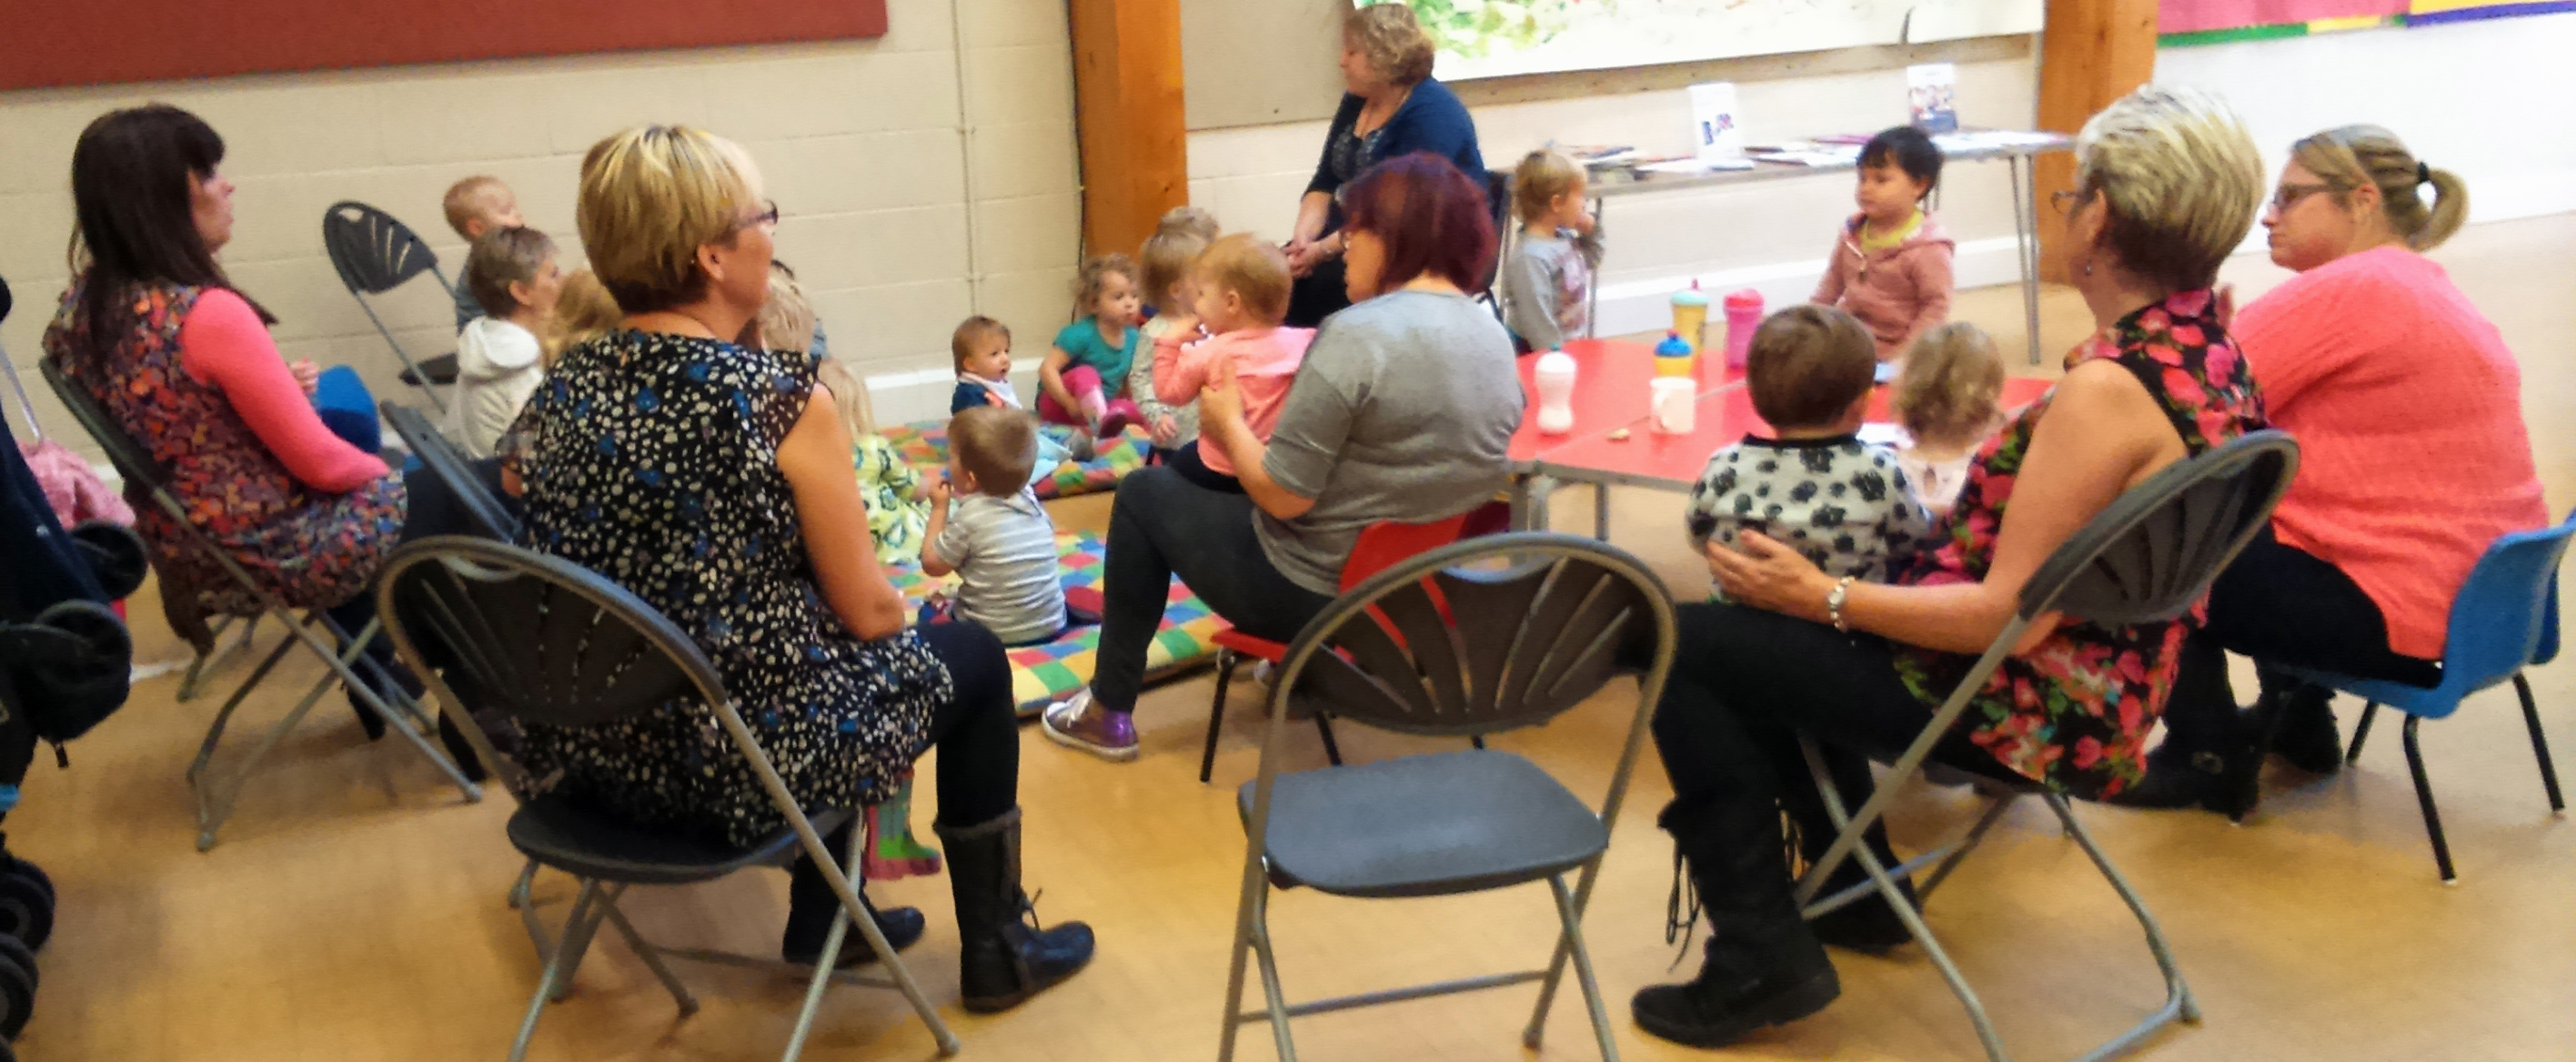 Story telling for under 5's